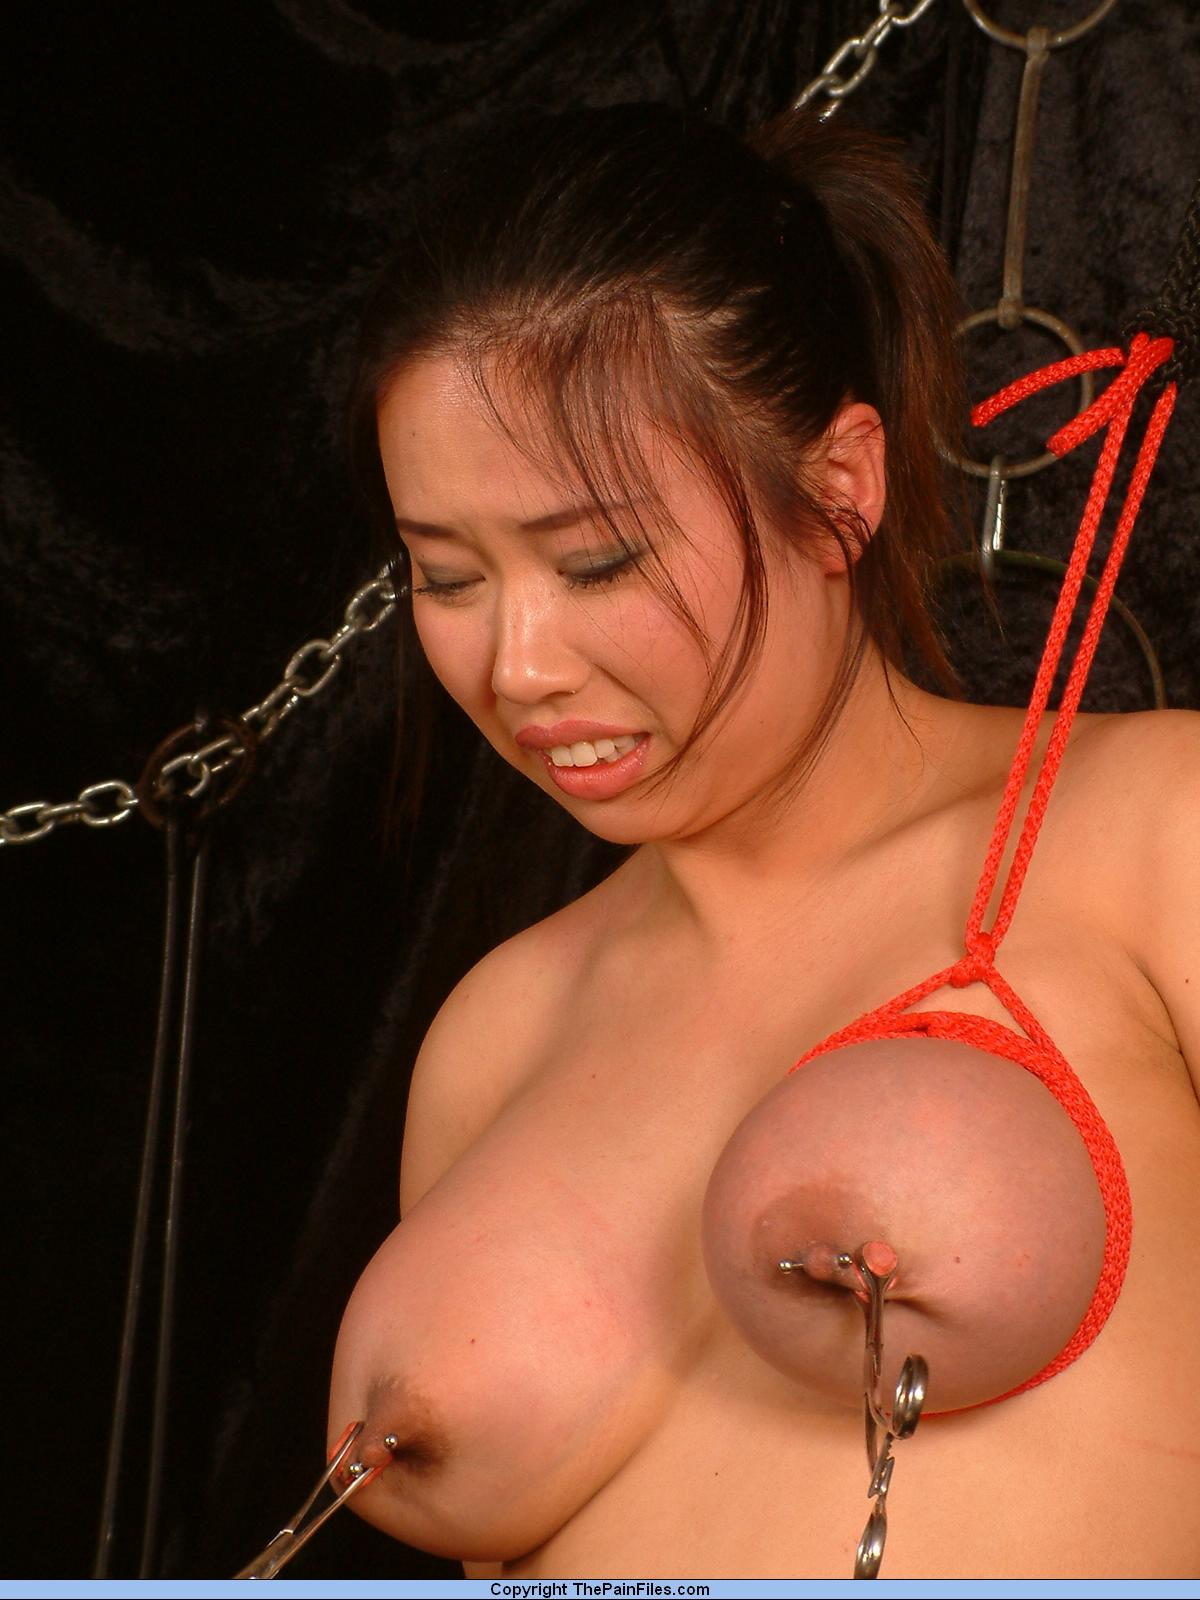 Very Bdsm beautiful asian image opinion